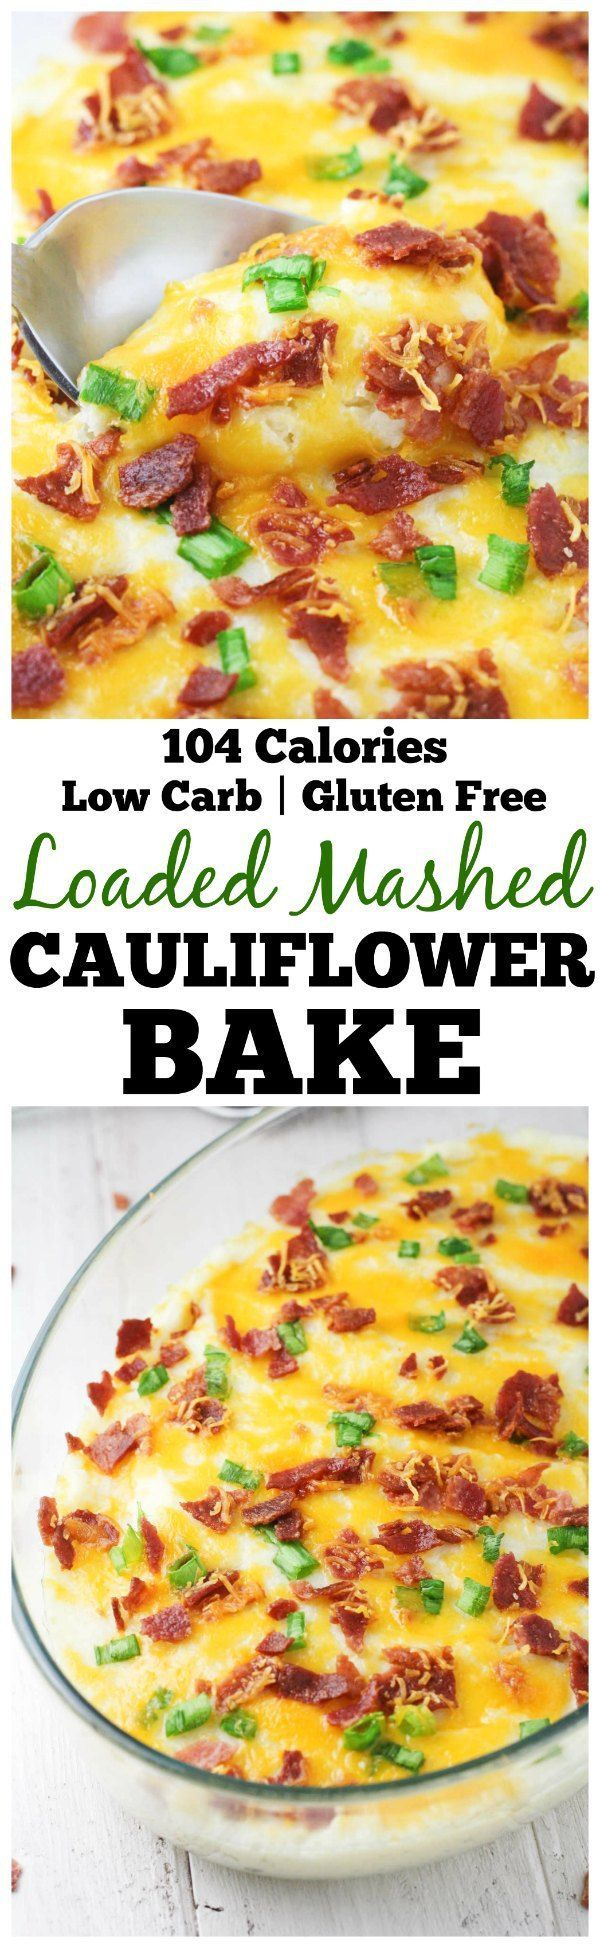 Loaded Mashed Cauliflower Bake - A super delicious, low carb alternative made with a few simple ingredients. The ultimate guilt free comfort meal or side dish! | It's Cheat Day Everyday.